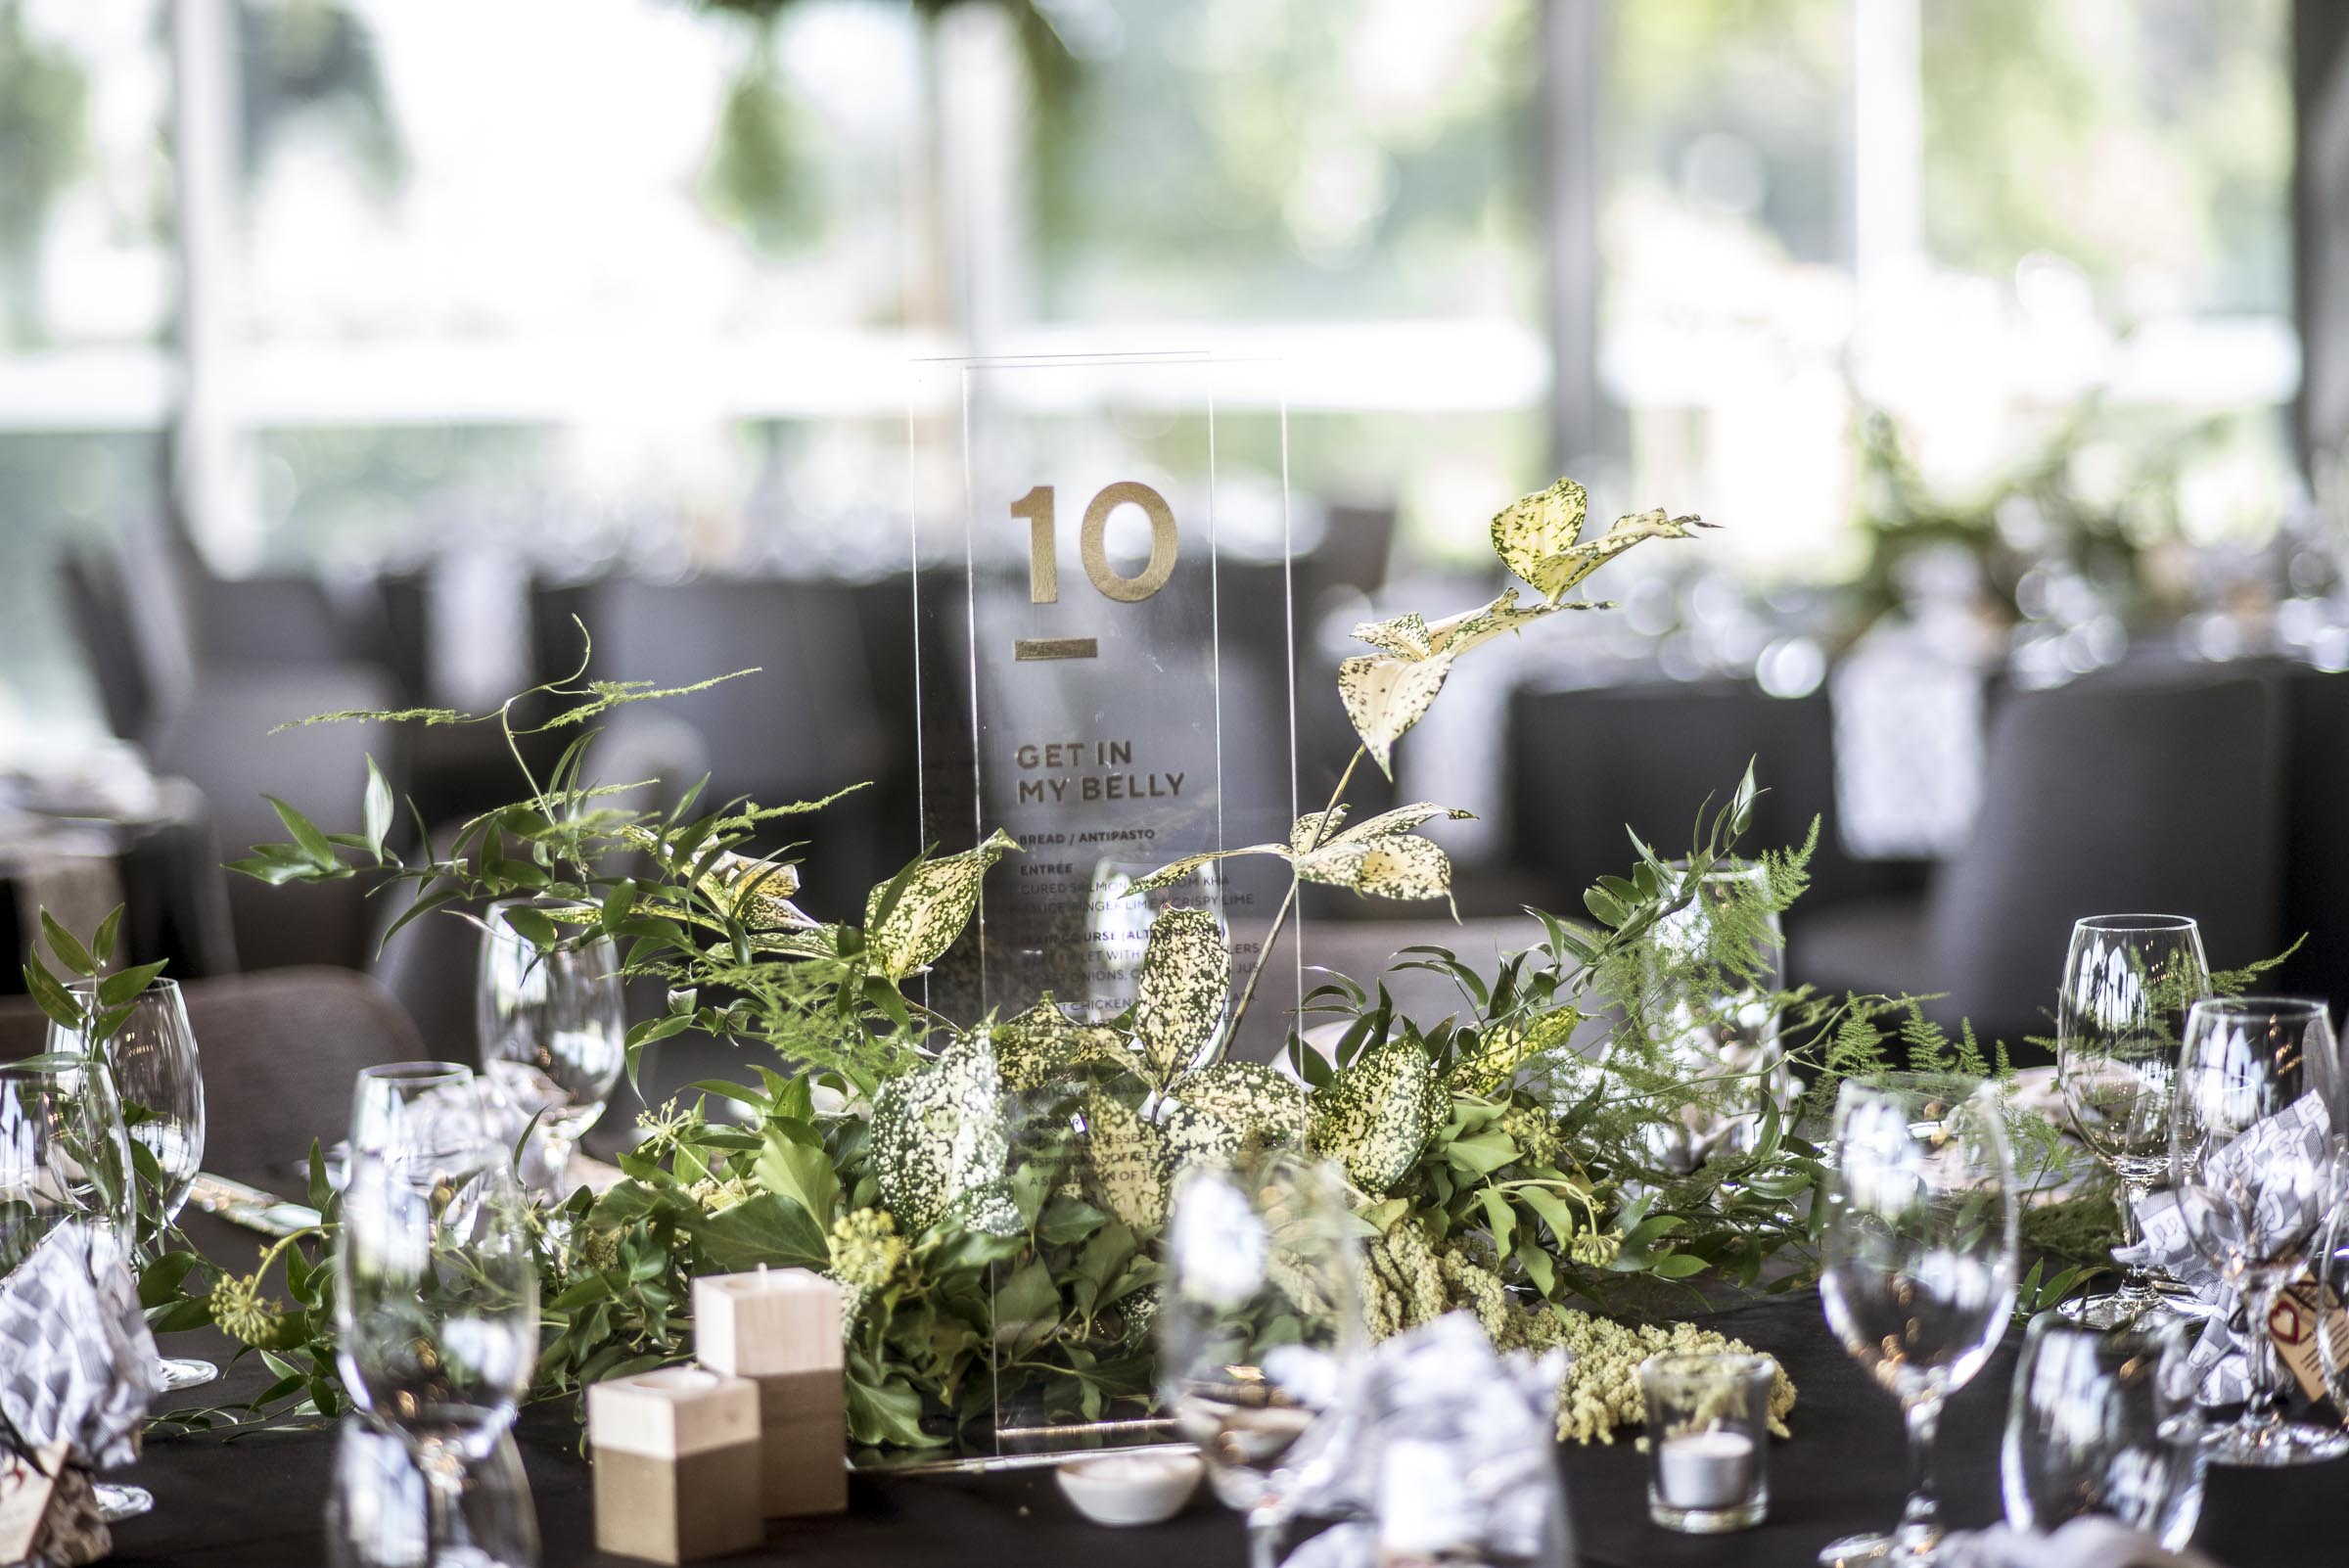 Foliage table centrepiece